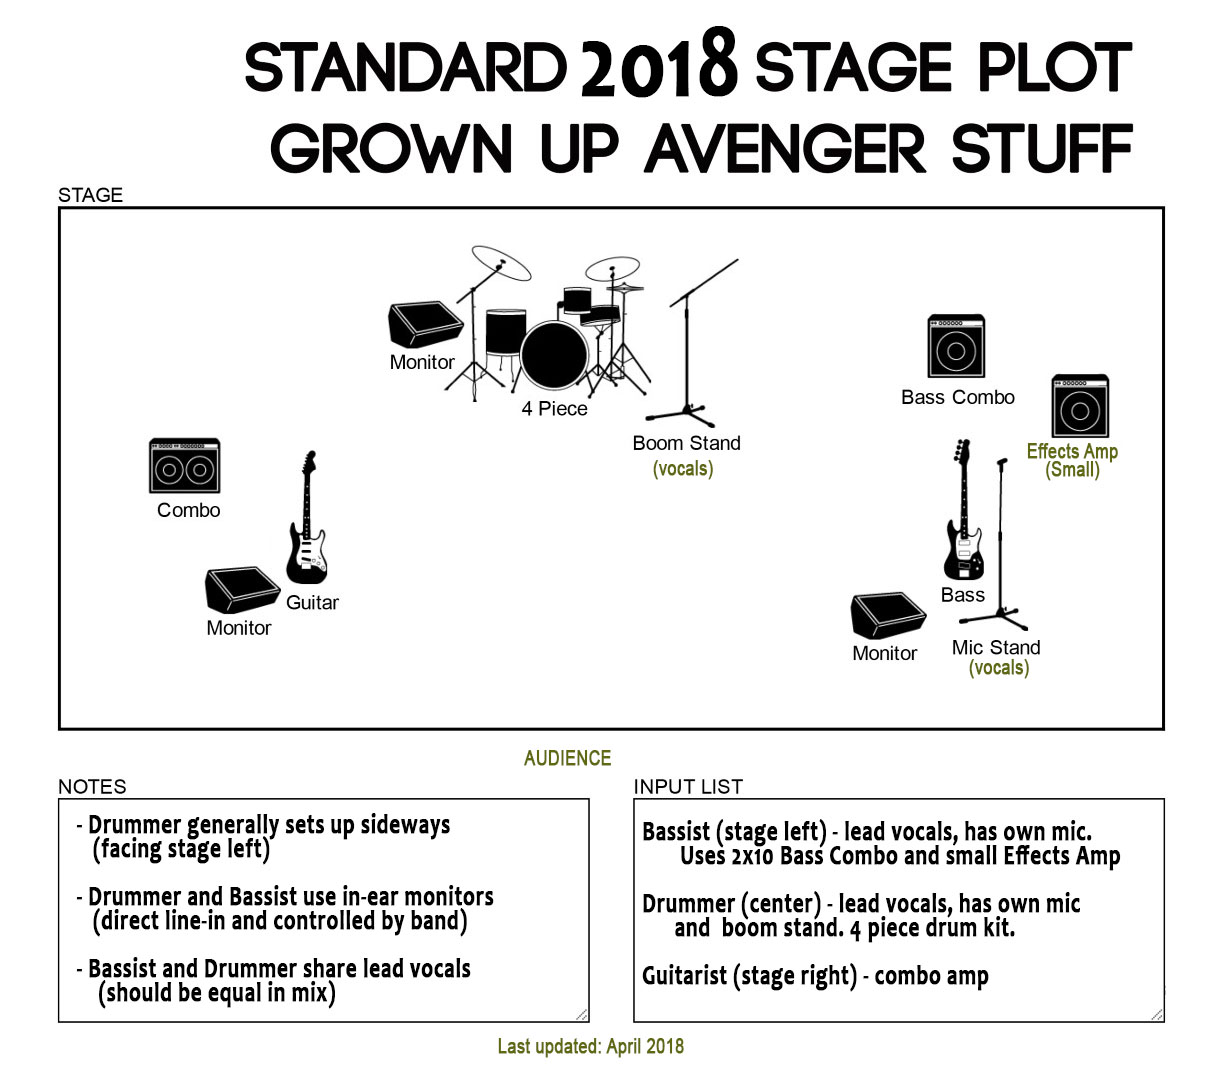 Stage Up grown up avenger stuff stage plot